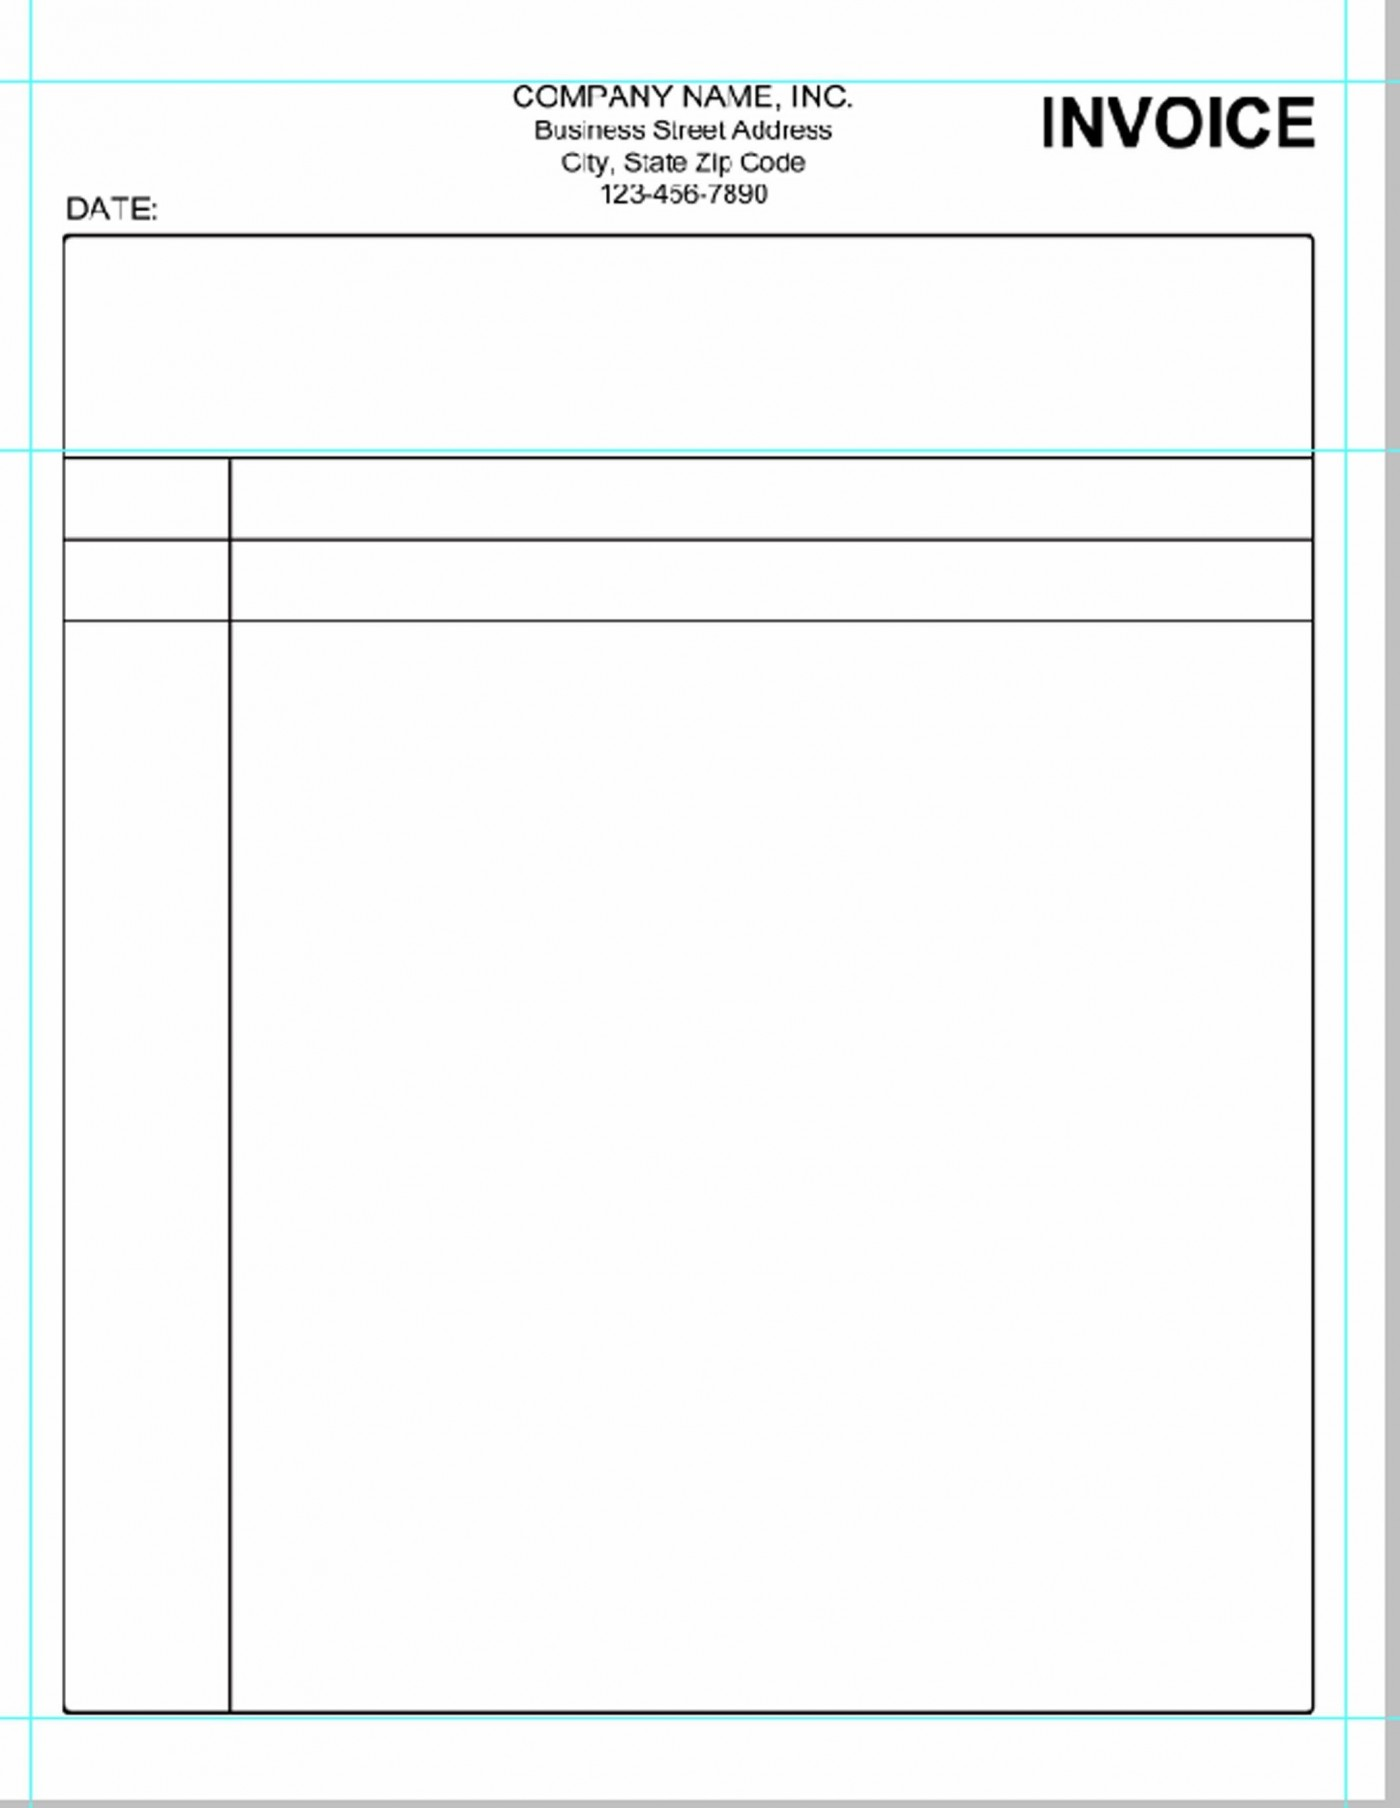 002 Formidable Receipt Template Microsoft Word High Definition  Invoice Free Money Blank1400